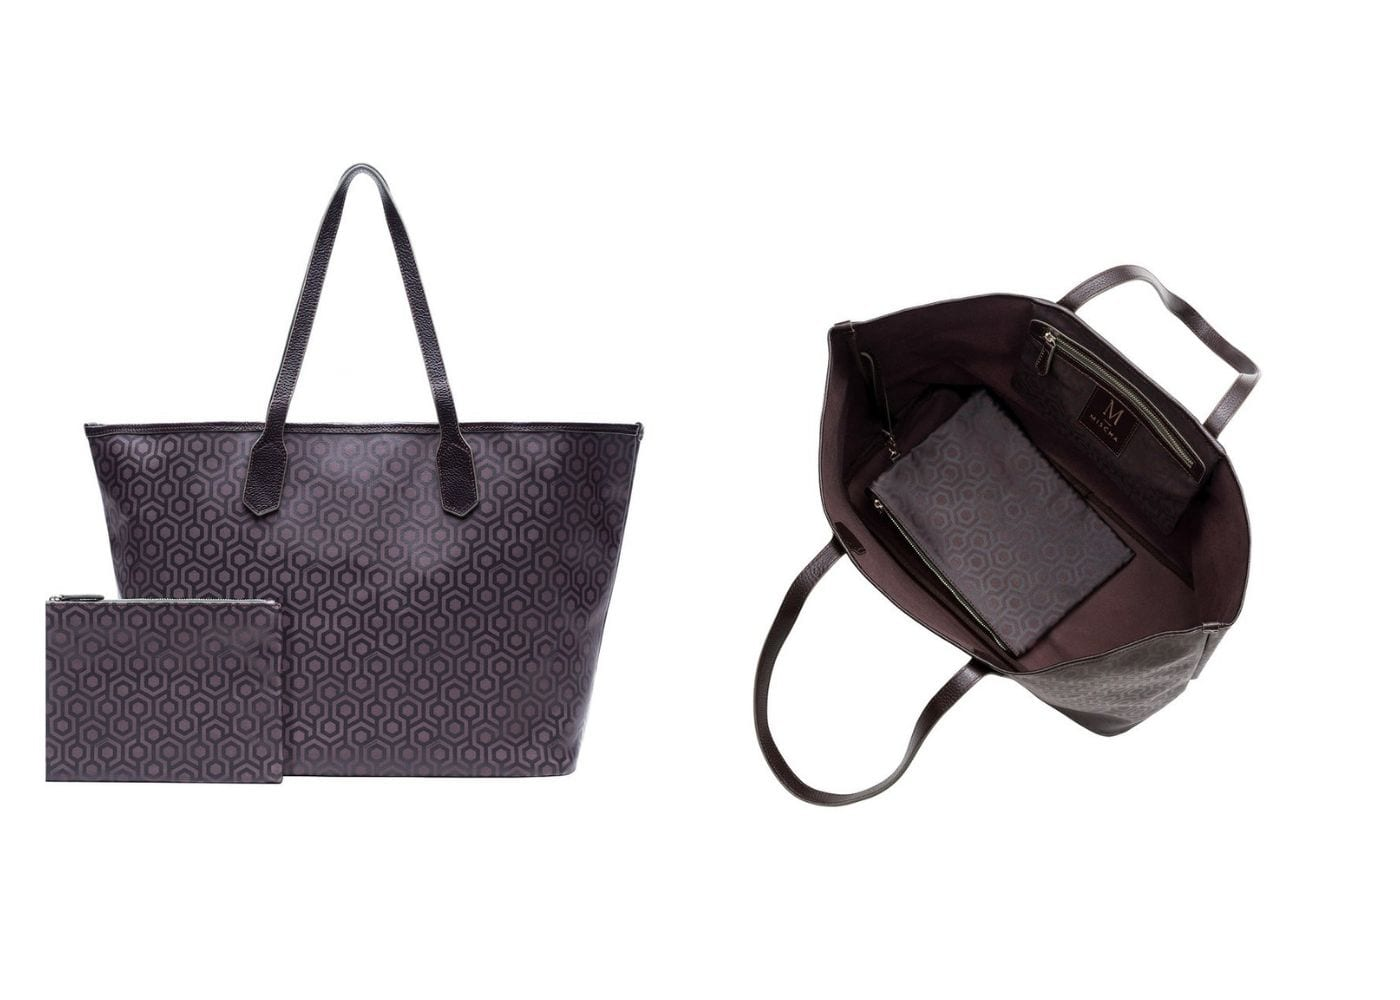 Stylish Diaper Bags: Mischa Designs Jet Set Tote